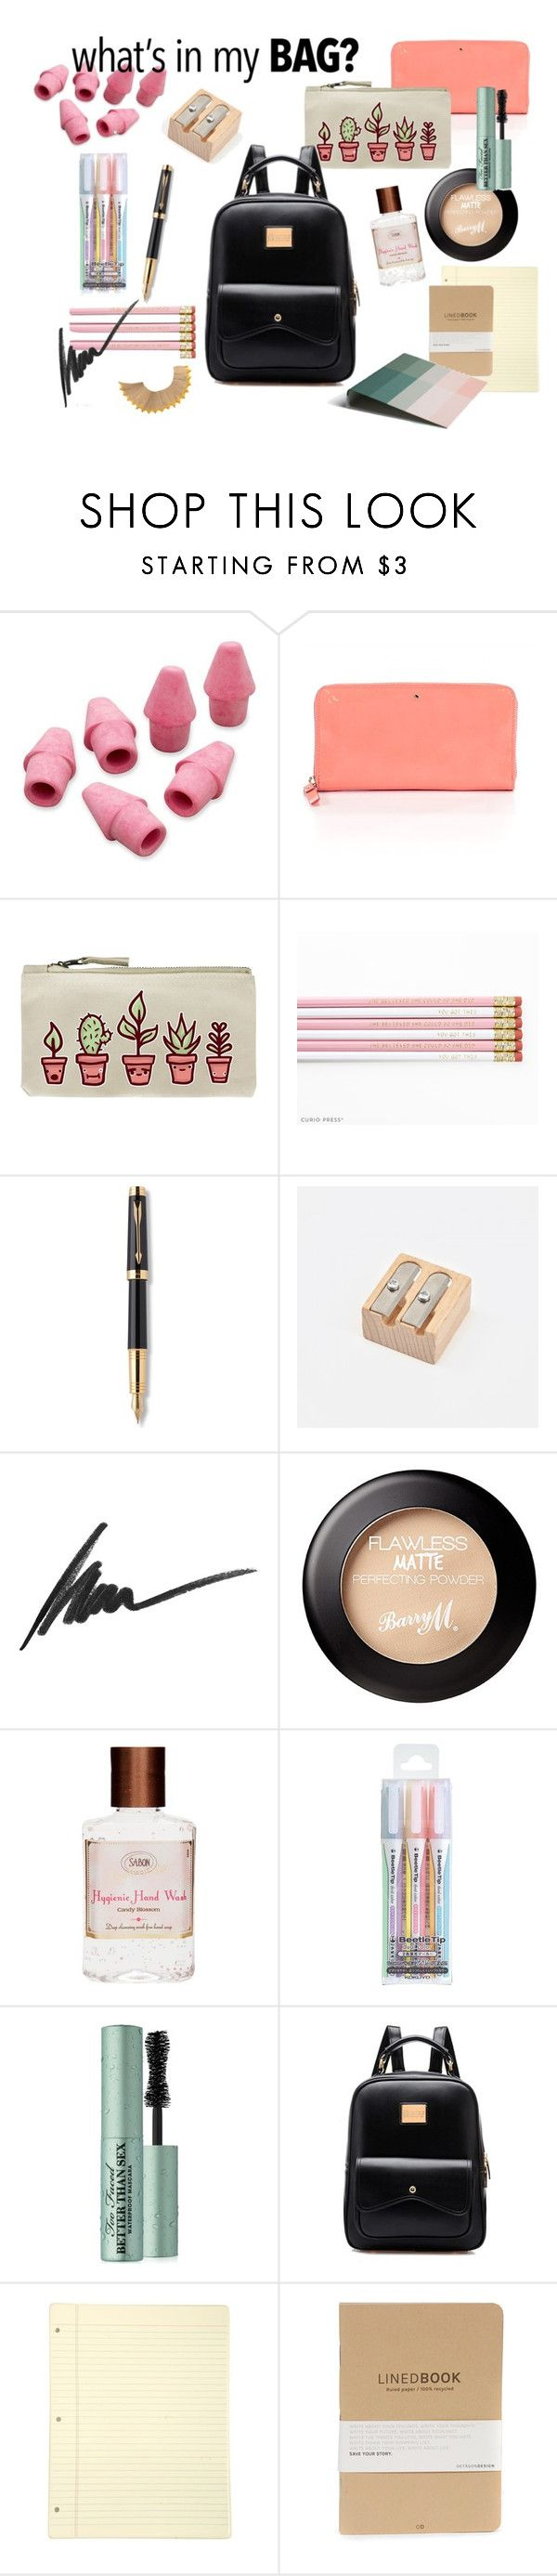 """""""What's in my backpack"""" by estelled23 ❤ liked on Polyvore featuring Paper Mate, Kate Spade, Parker, Max Factor, Too Faced Cosmetics, HAY, BackToSchool, school, backpack and WhatsInMyBag"""